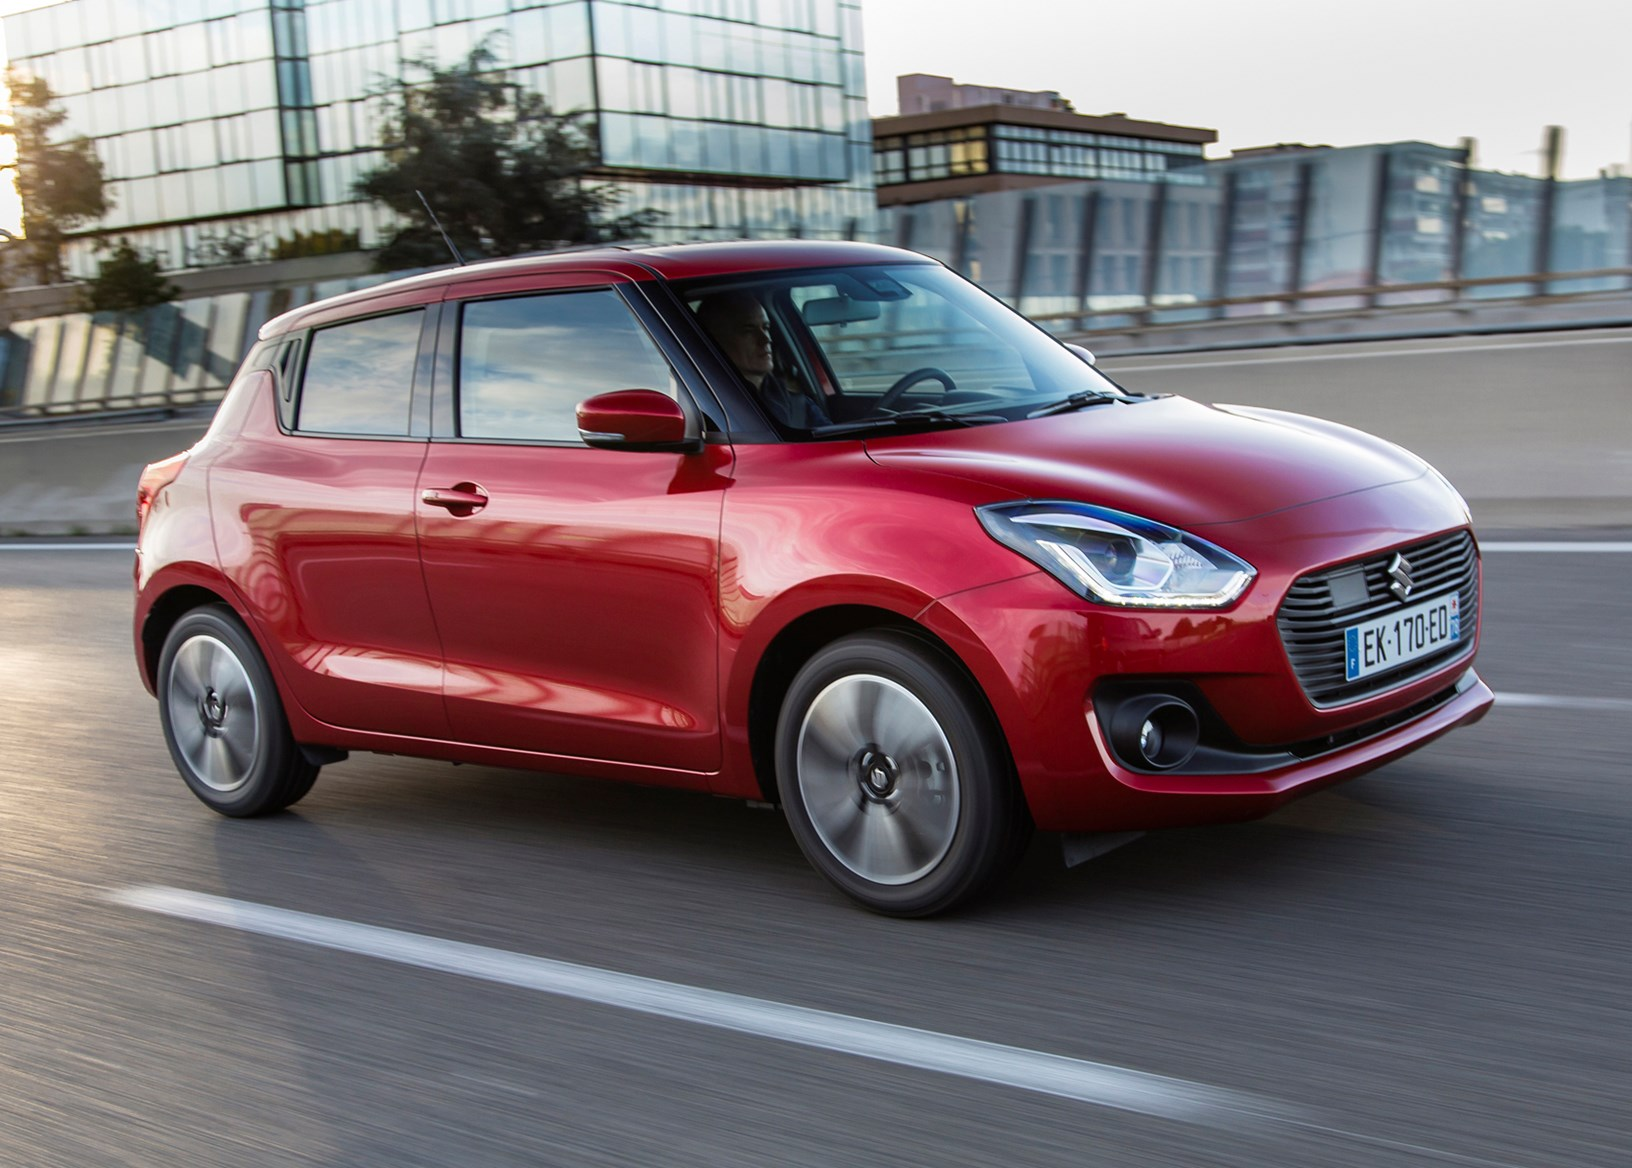 Suzuki Swift Hatchback Review (2017 - ) | Parkers